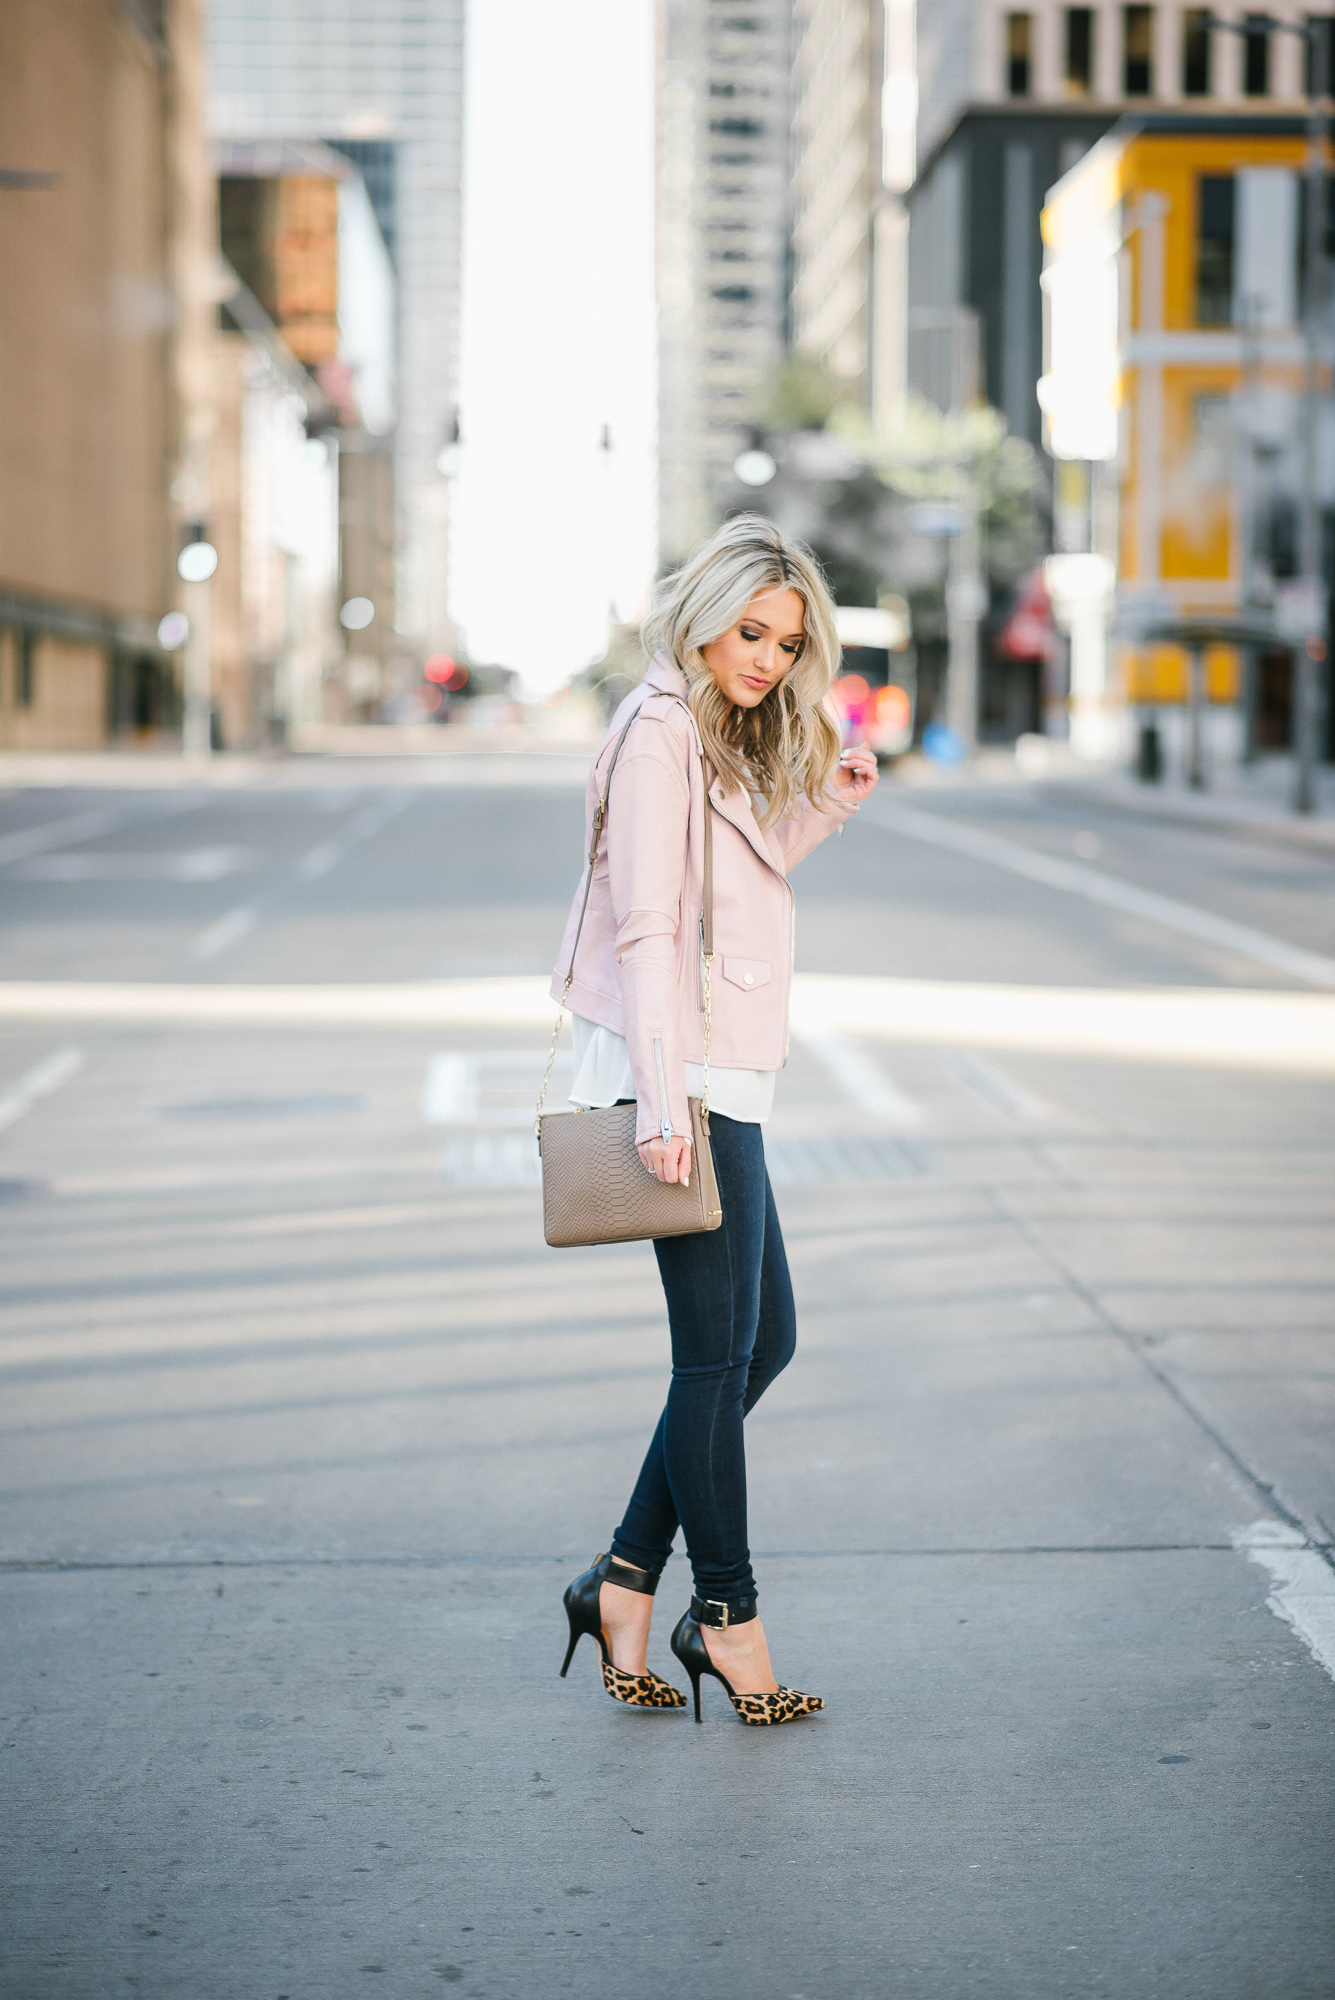 Emily Herren Champagne and Chanel